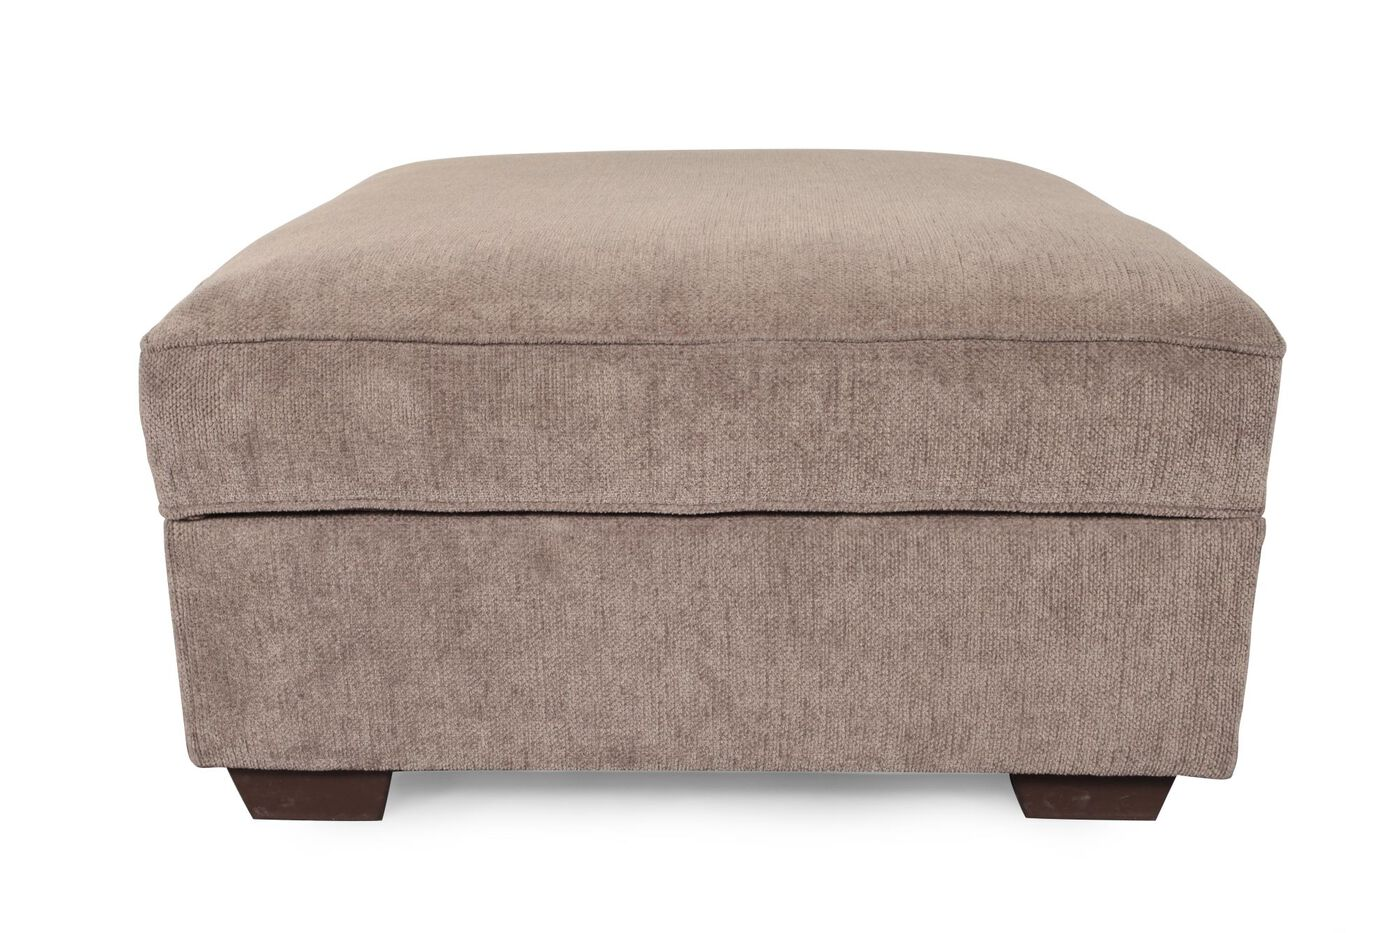 Ashley Loric Smoke Storage Ottoman - Ottomans Mathis Brothers Furniture Stores